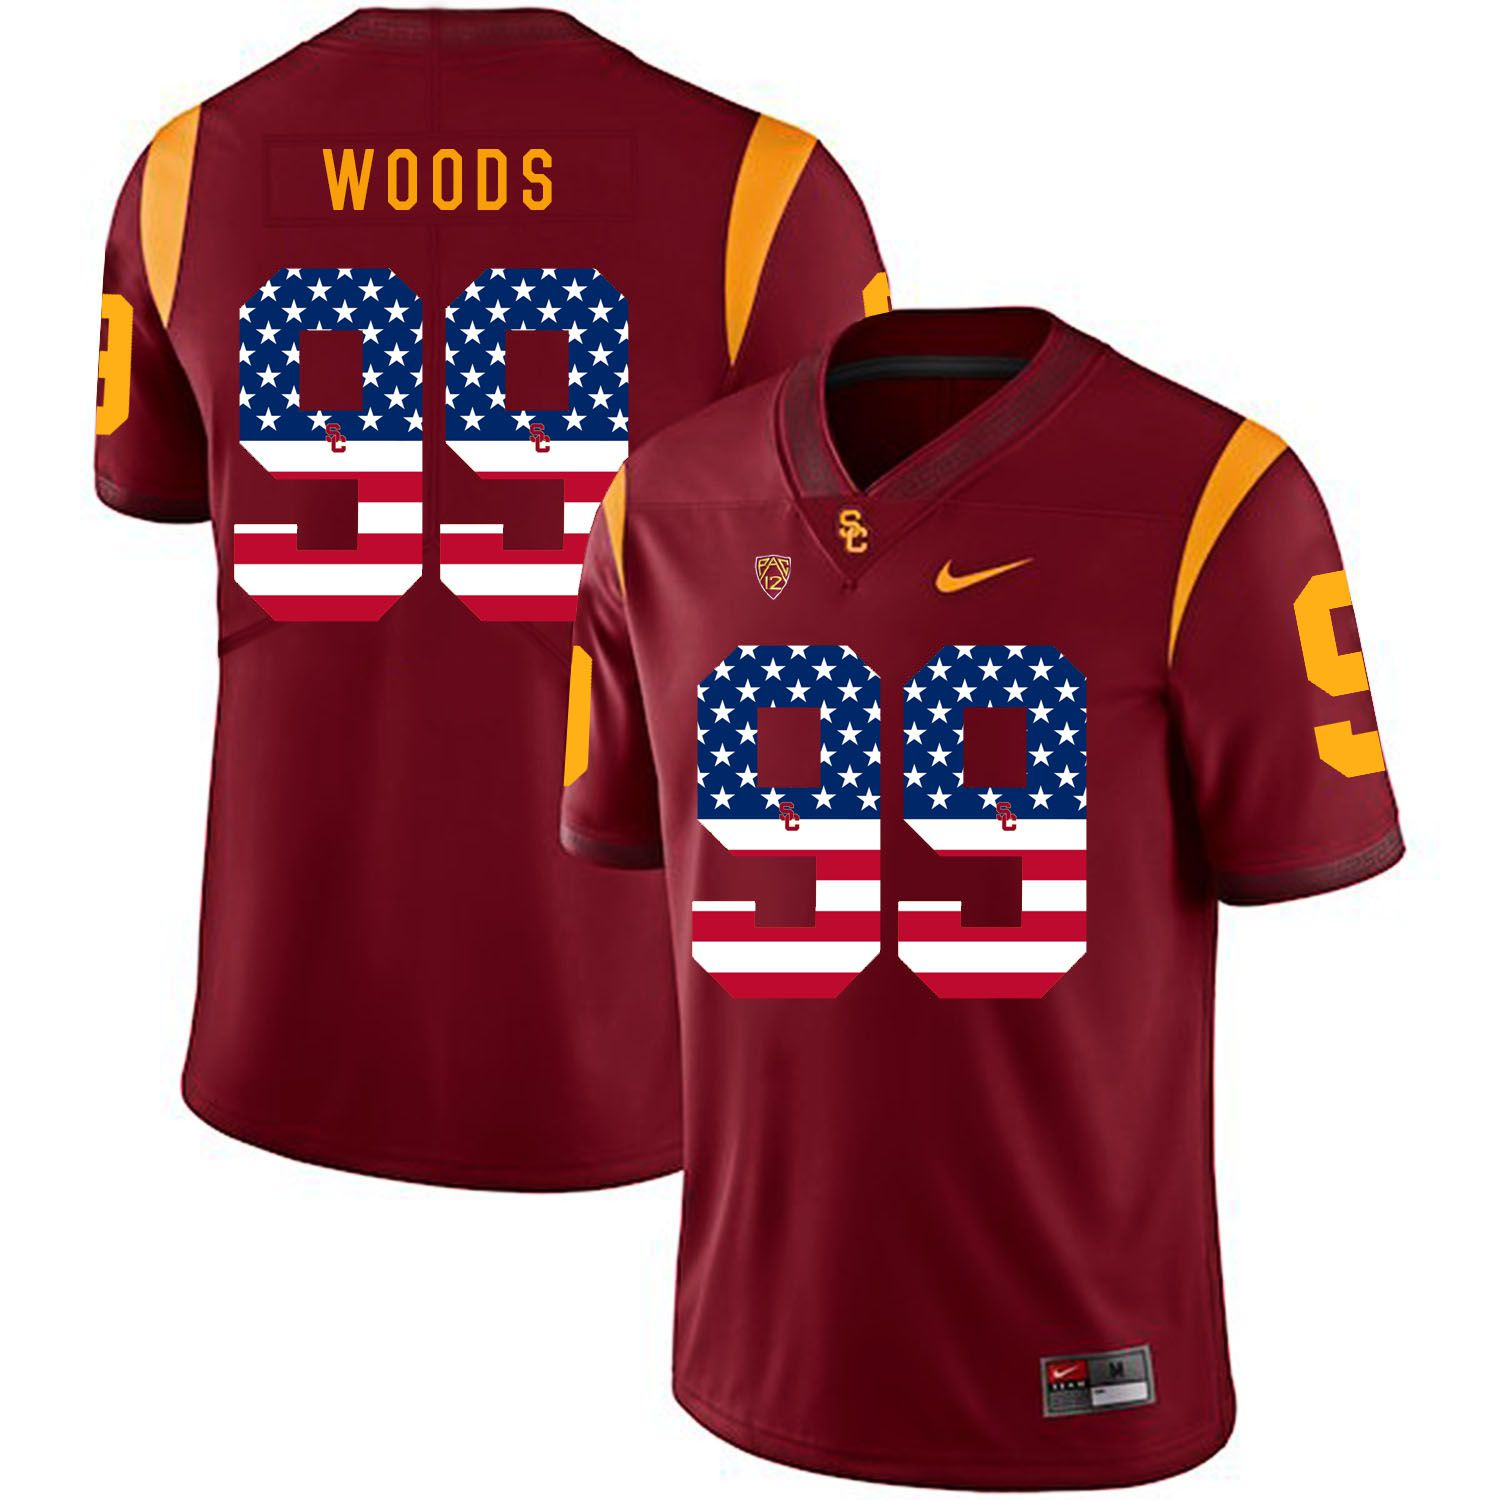 Men USC Trojans 99 Woods Red Flag Customized NCAA Jerseys